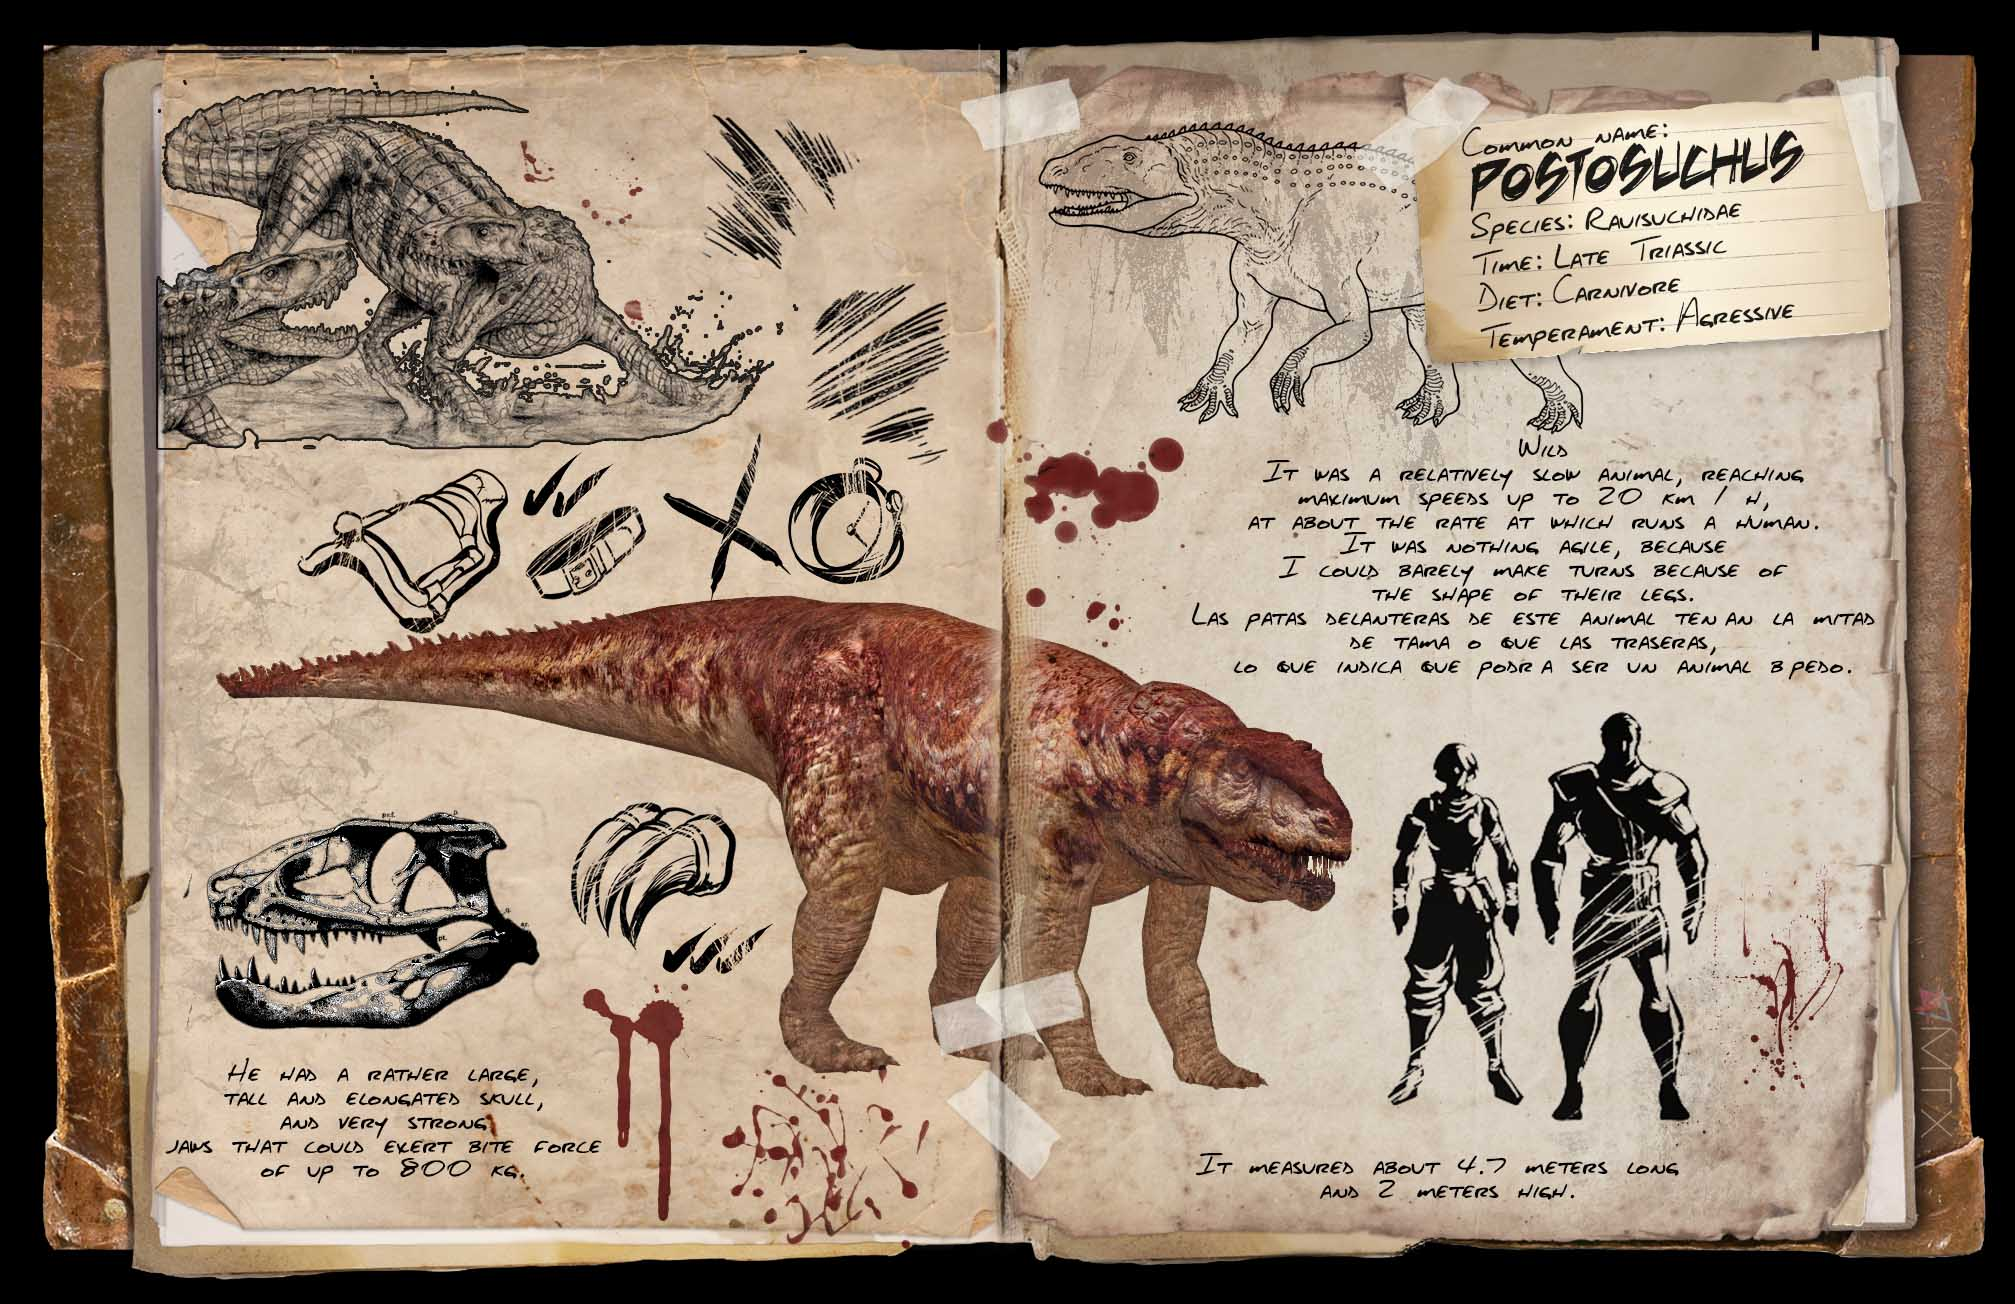 Postosuchus Dossier By Tomtoyer Featured Fanart Ark Official Community Forums | ark survival evolved e05. postosuchus dossier by tomtoyer